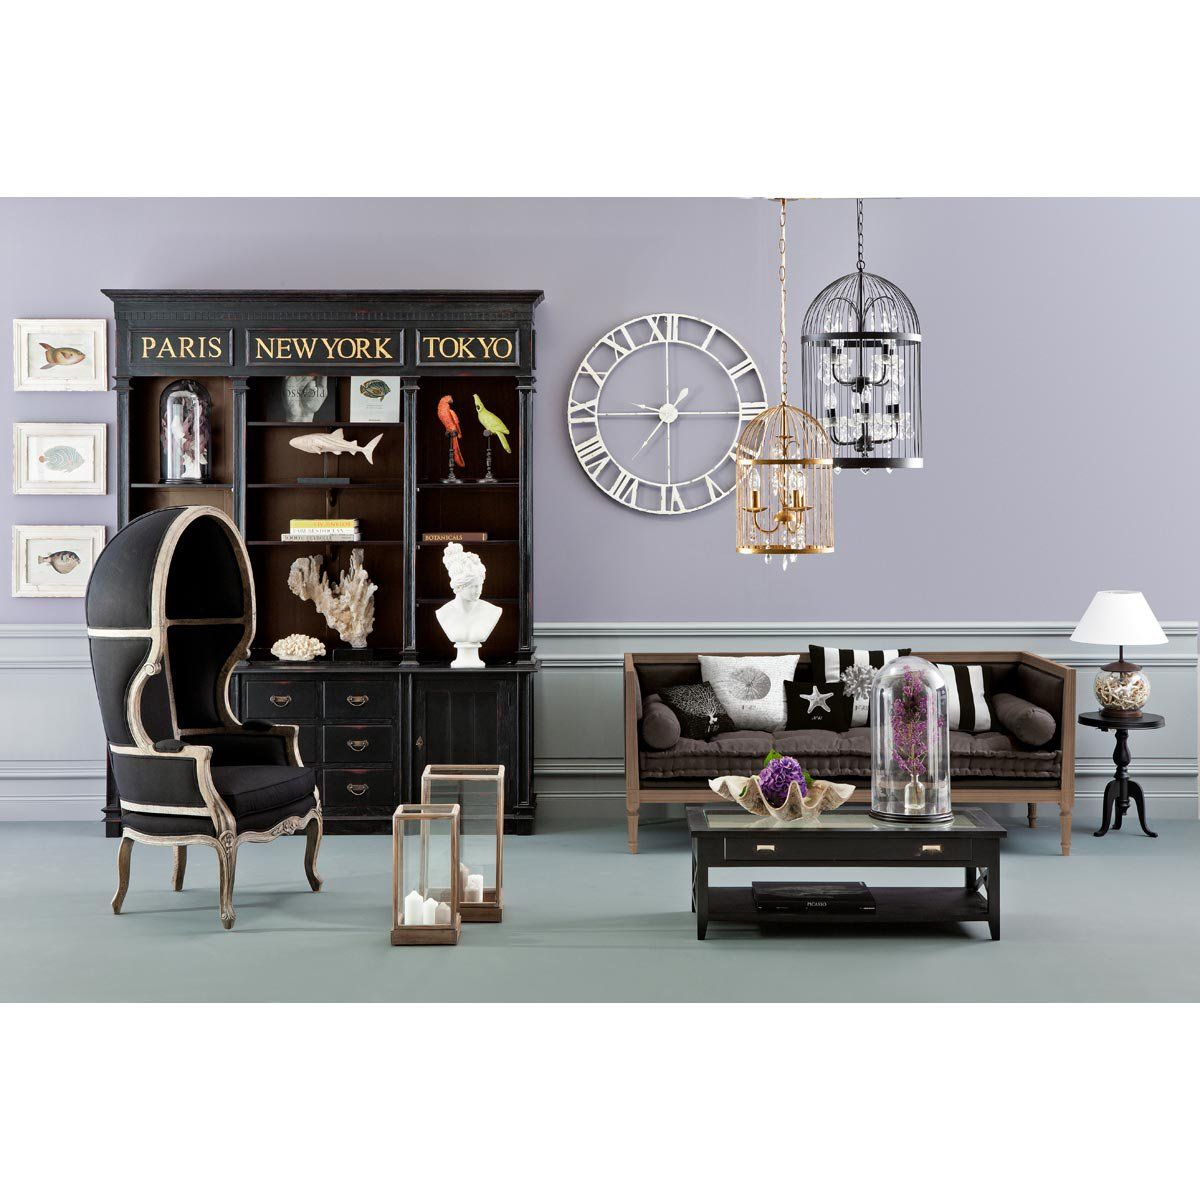 maisons du monde haussmann library 3 office pinterest. Black Bedroom Furniture Sets. Home Design Ideas